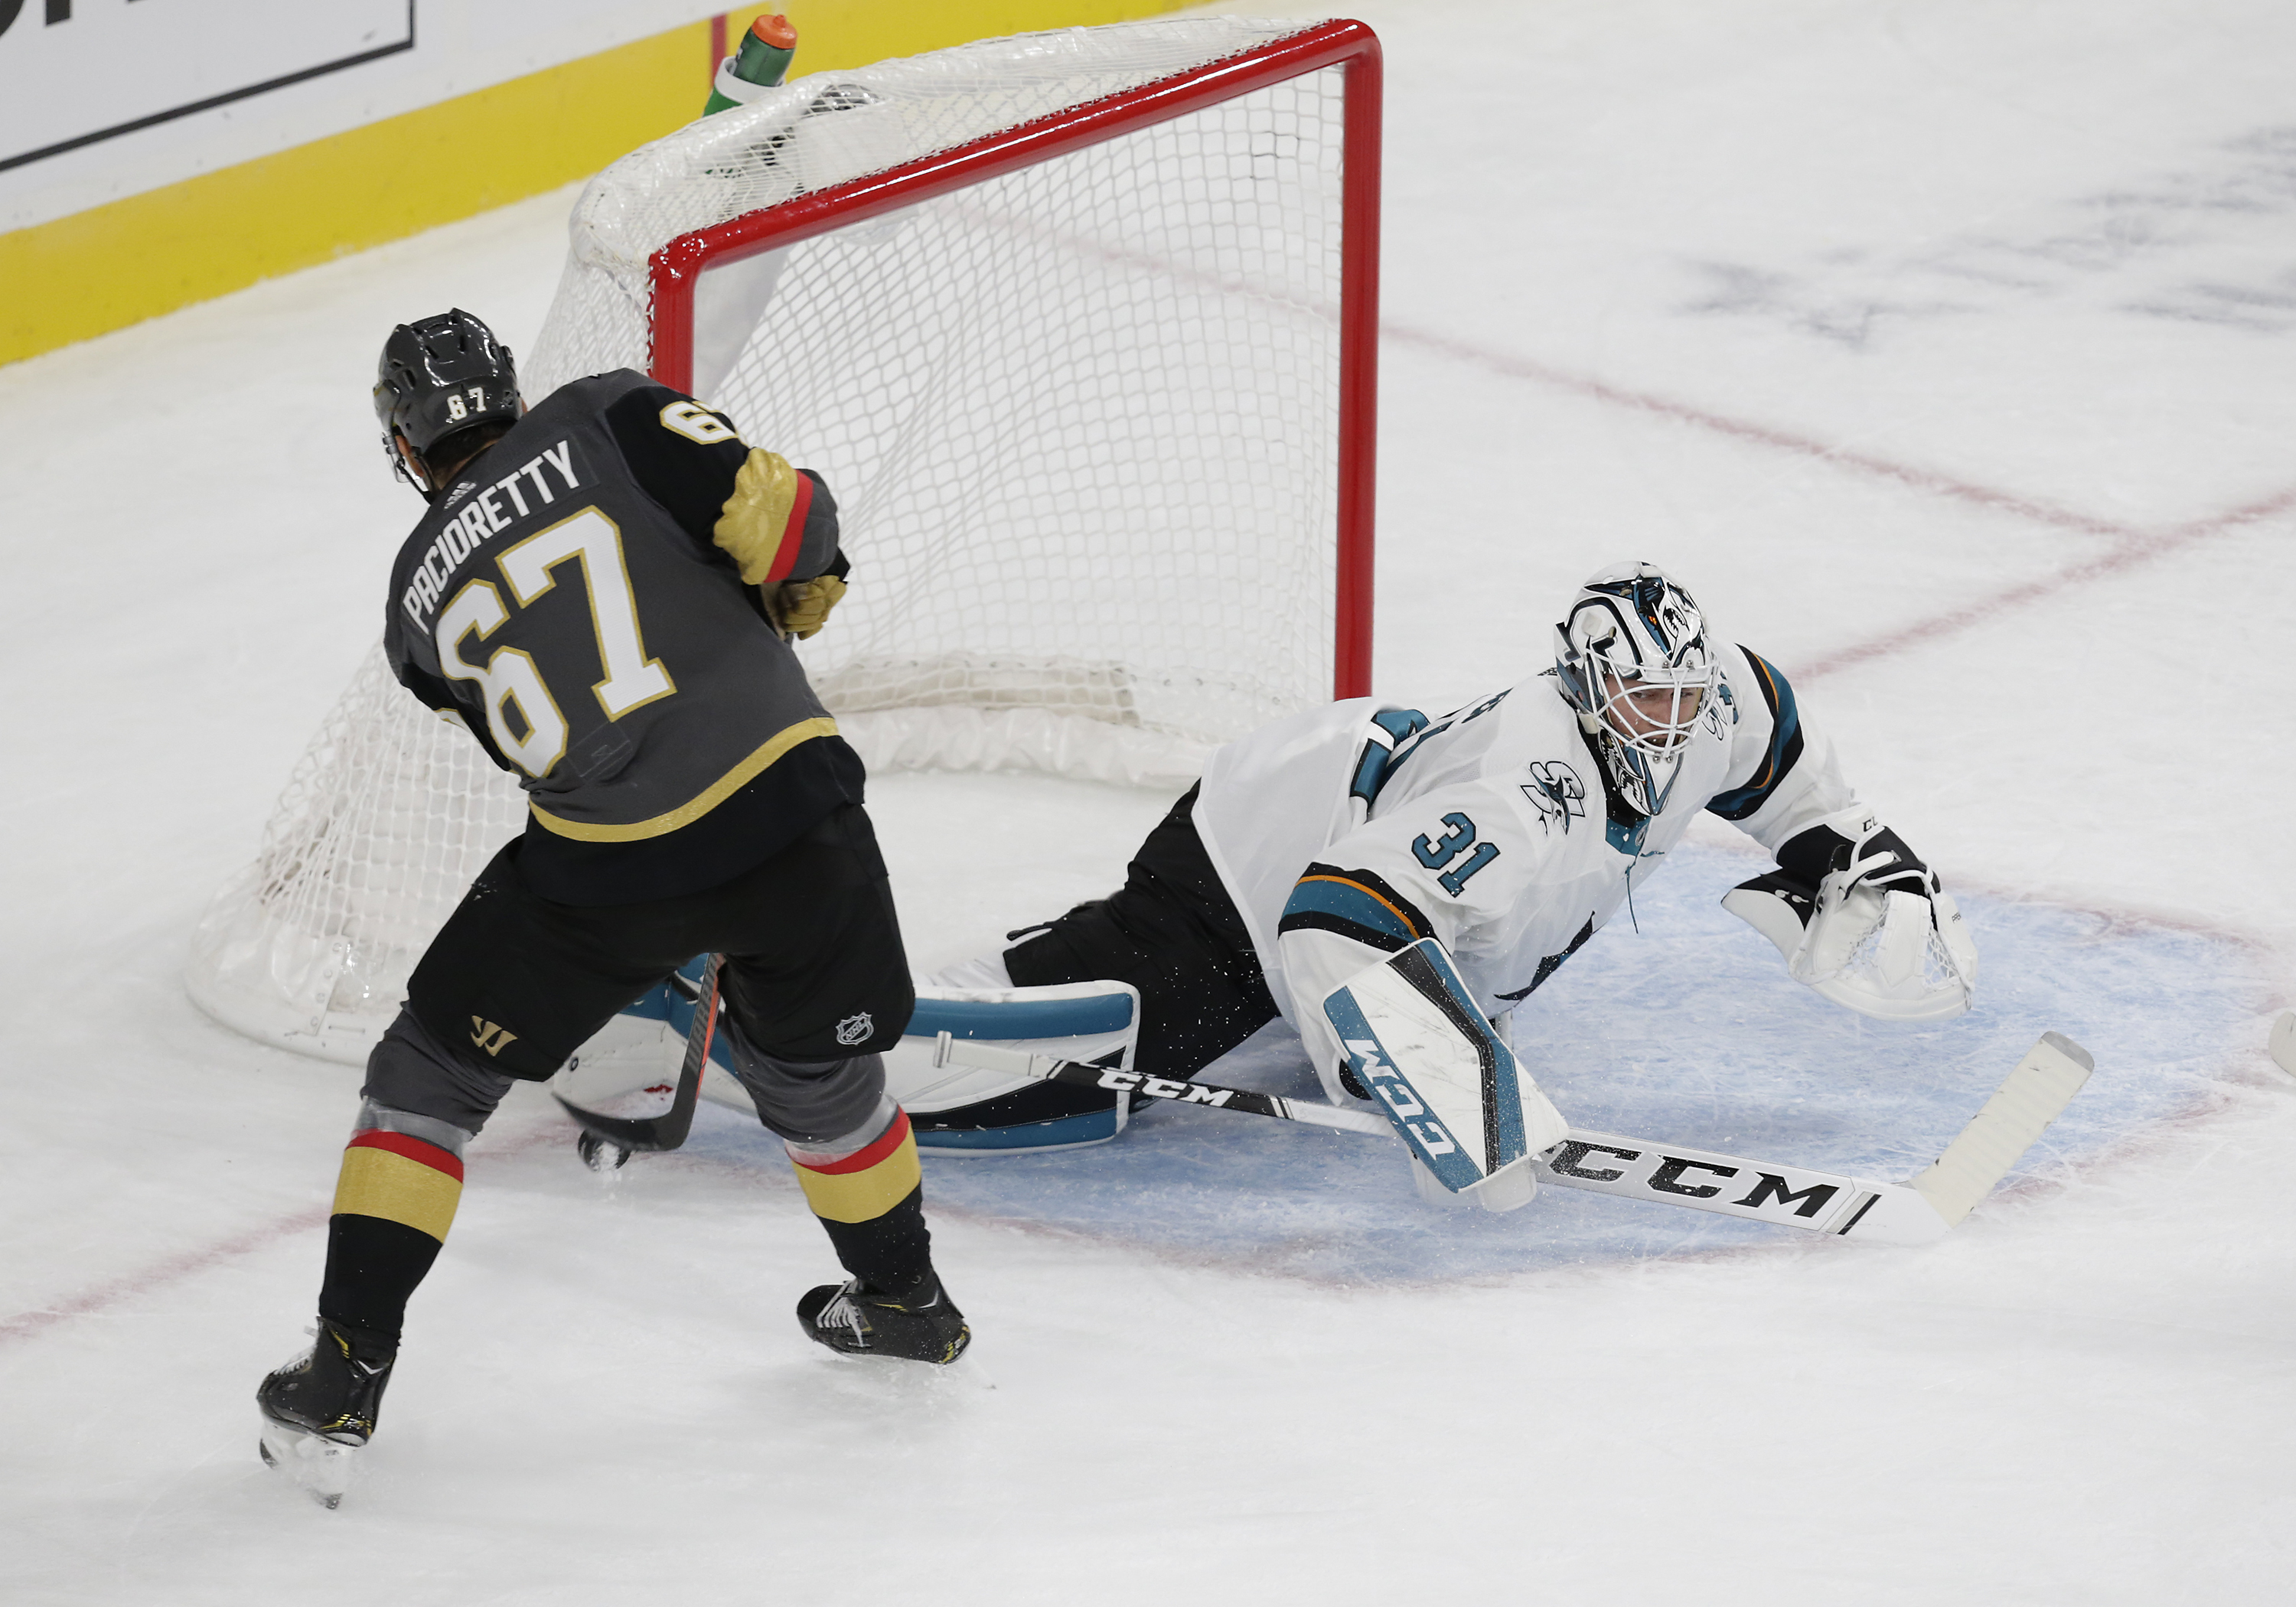 Vegas Golden Knights left wing Max Pacioretty (67) shoots the puck and is blocked by San Jose Sharks goaltender Martin Jones (31) during a regular season game Wednesday, Oct. 2, 2019, at T-Mobile Arena in Las Vegas, Nevada.